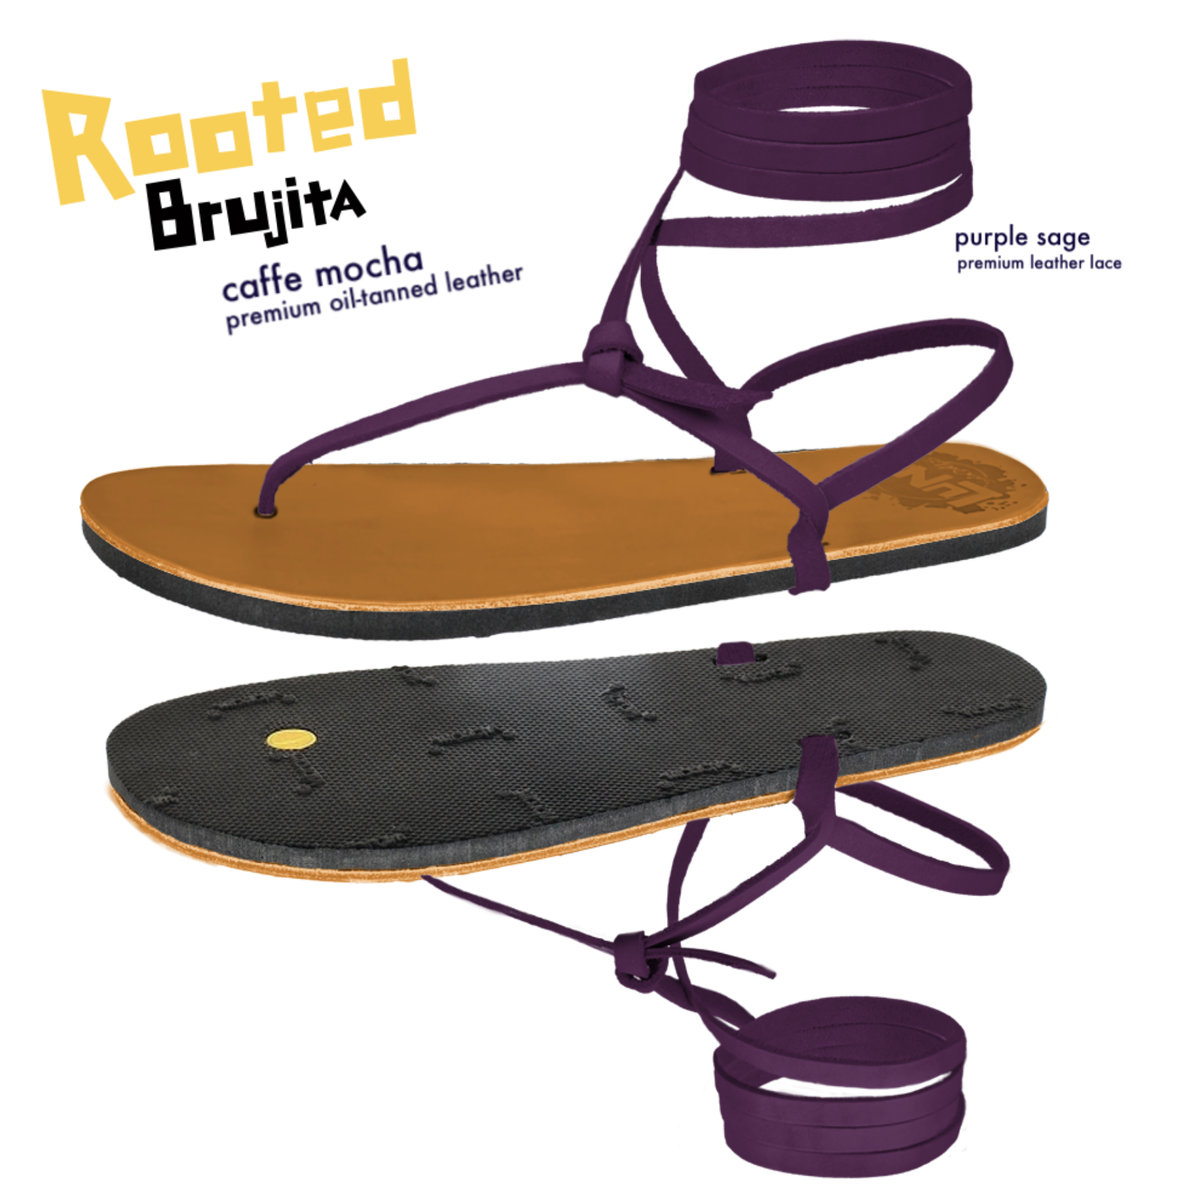 ROOTED BRUJITA MULTI-WRAP